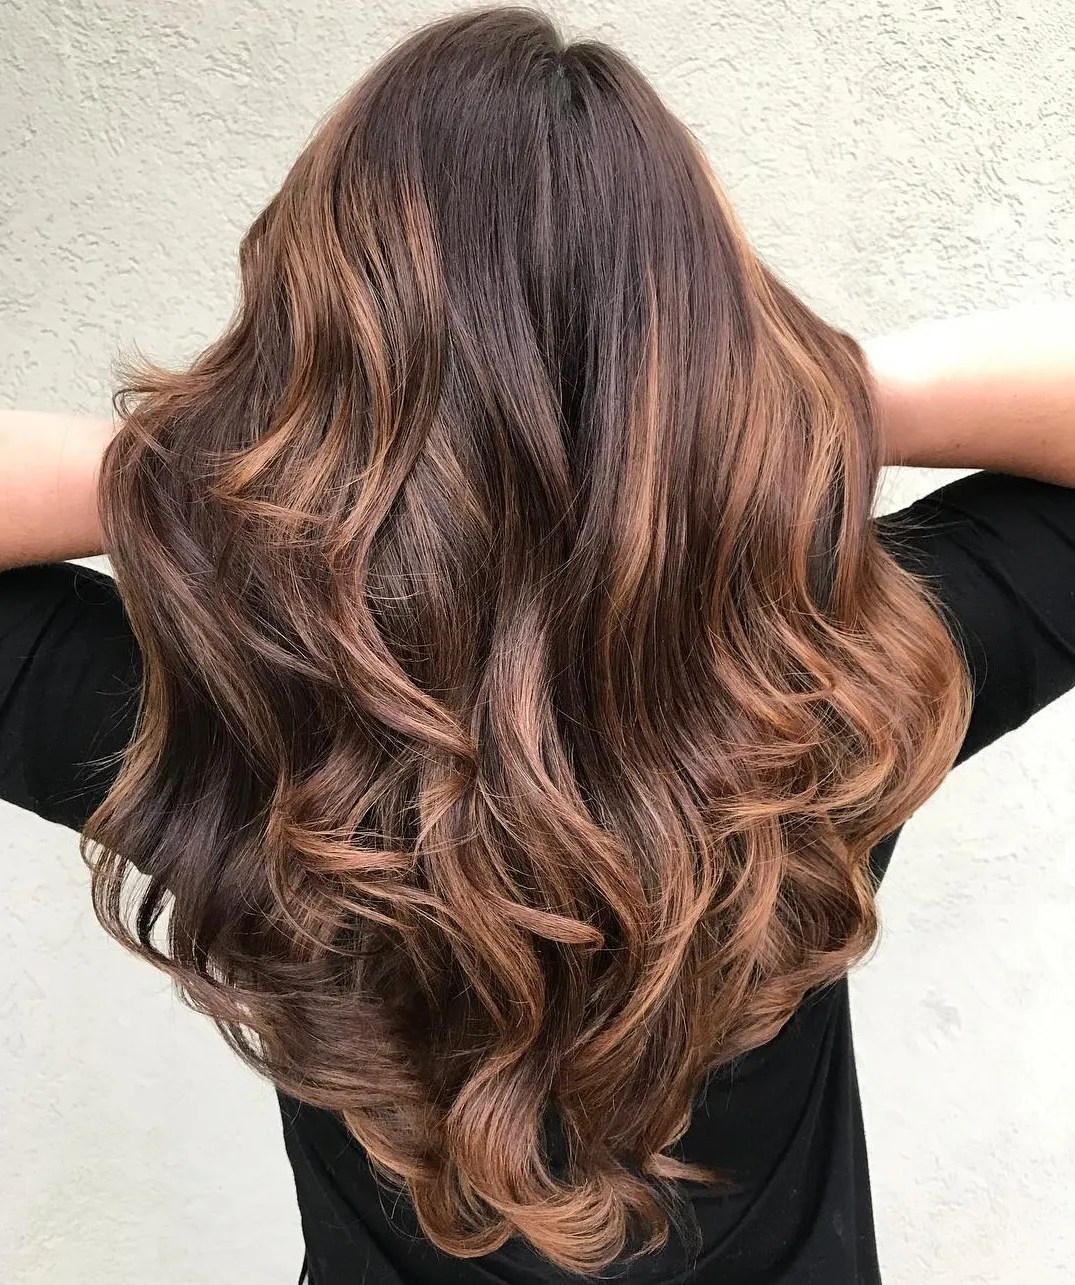 Chocolate and Caramel Layered Hairstyle